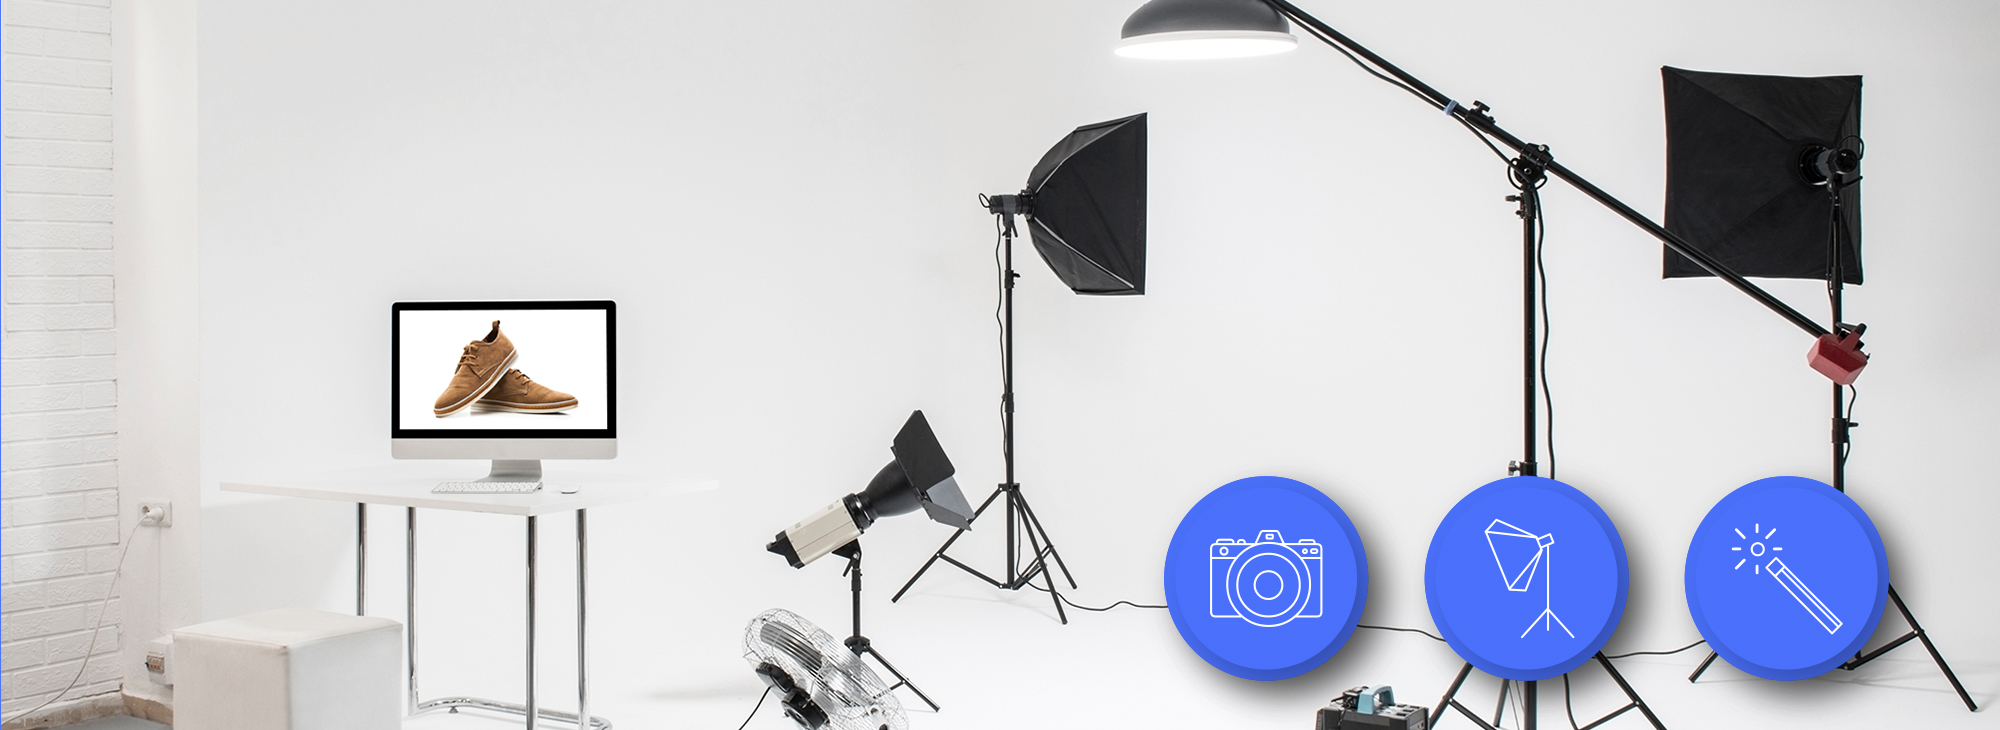 How To Master Product Photography On A Tight Budget We Did It With Less Than 50